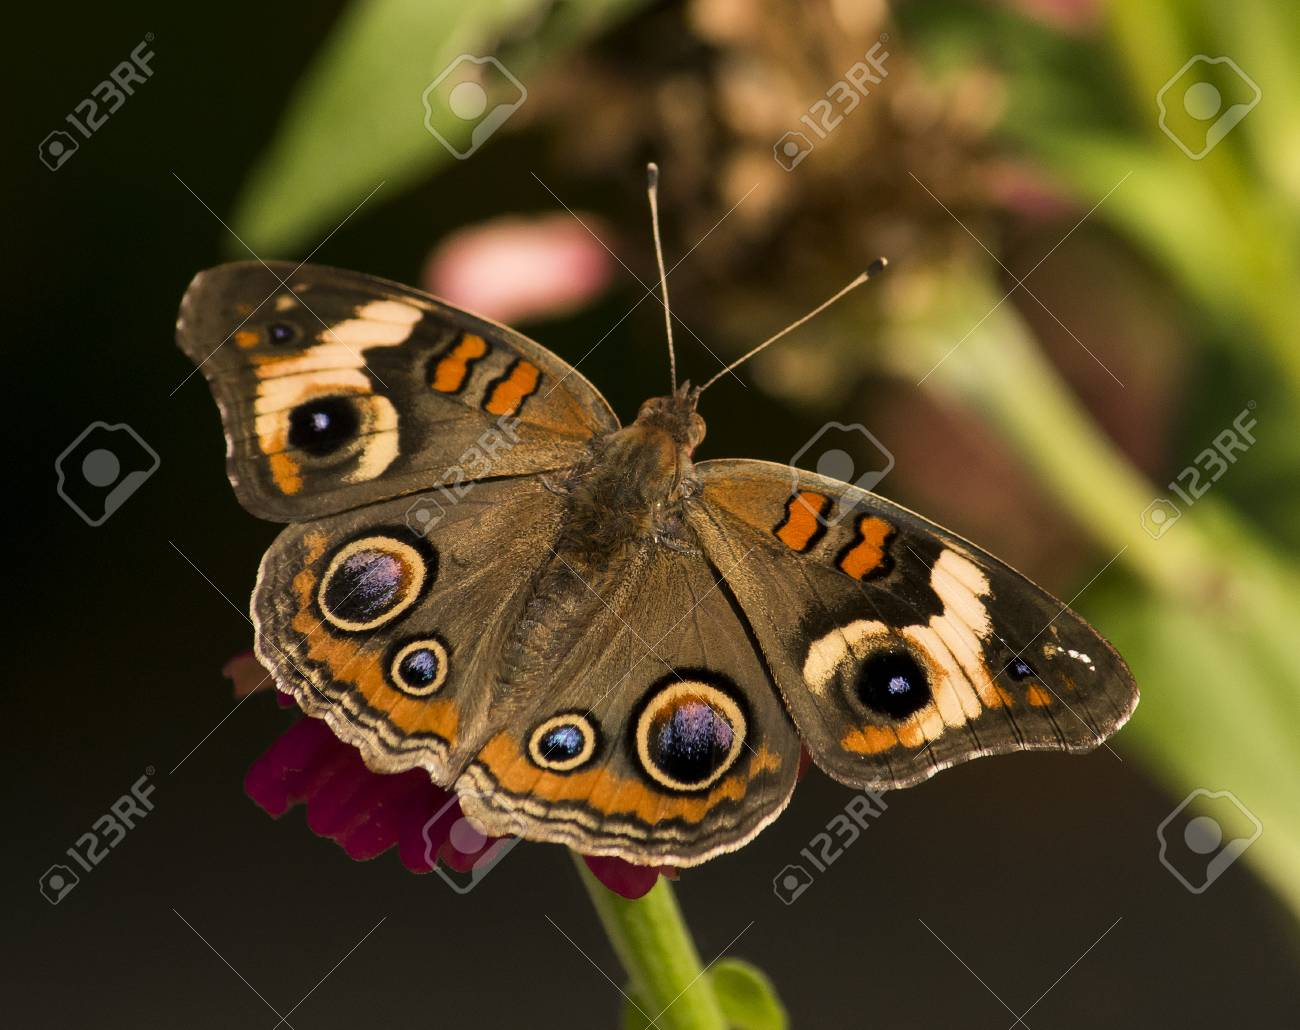 Buckeye Butterfly With Open Wings In A Garden. Stock Photo, Picture ...